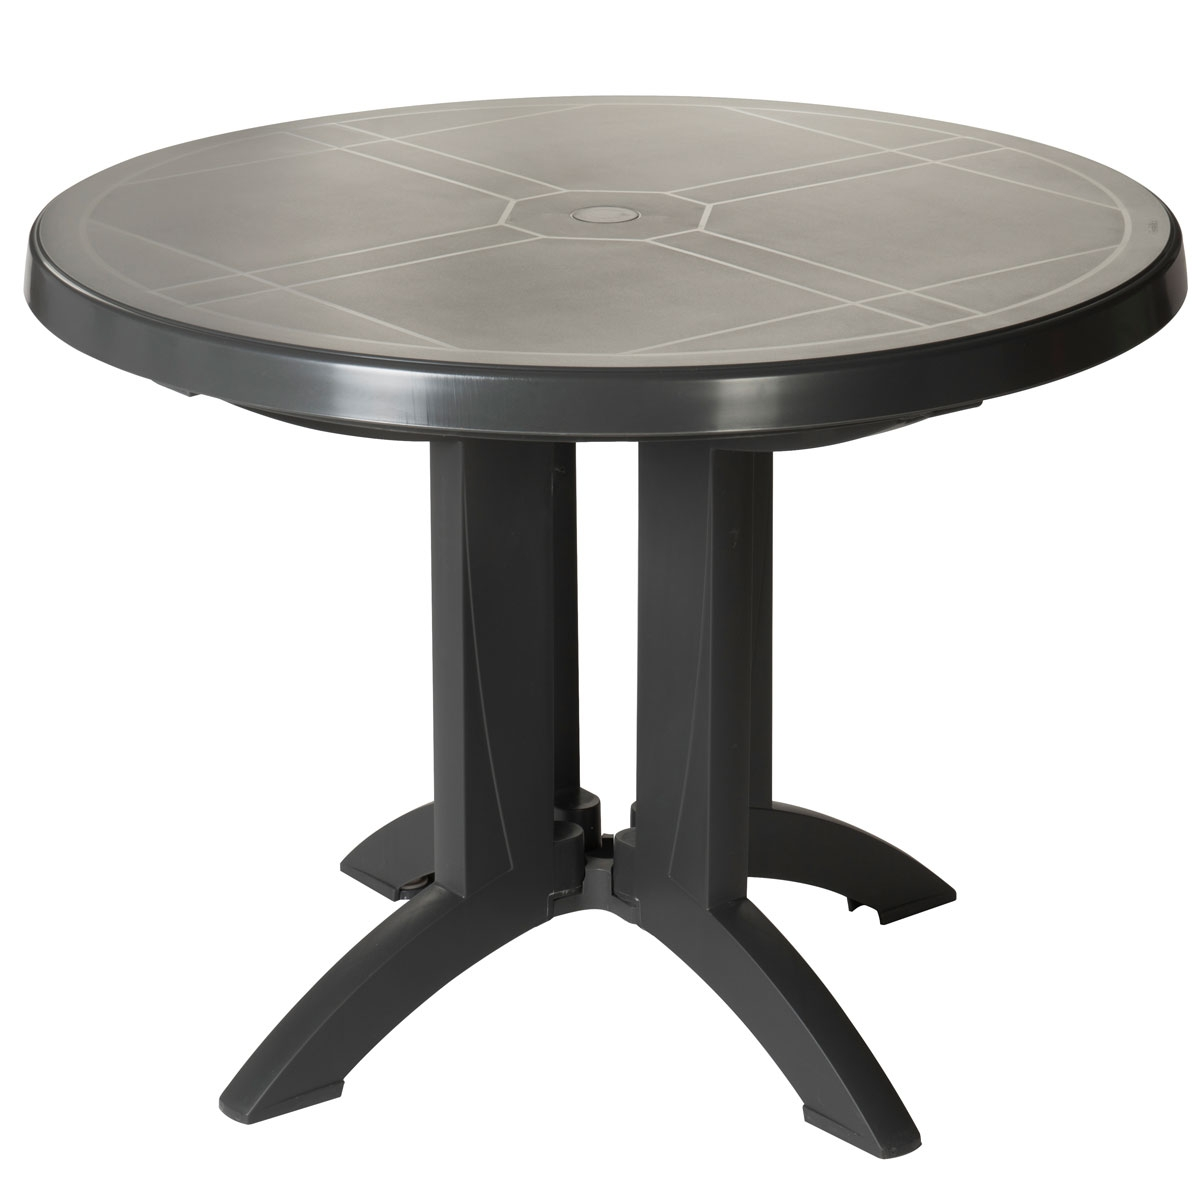 Table ronde de jardin vega grosfillex - Table jardin grofilex besancon ...